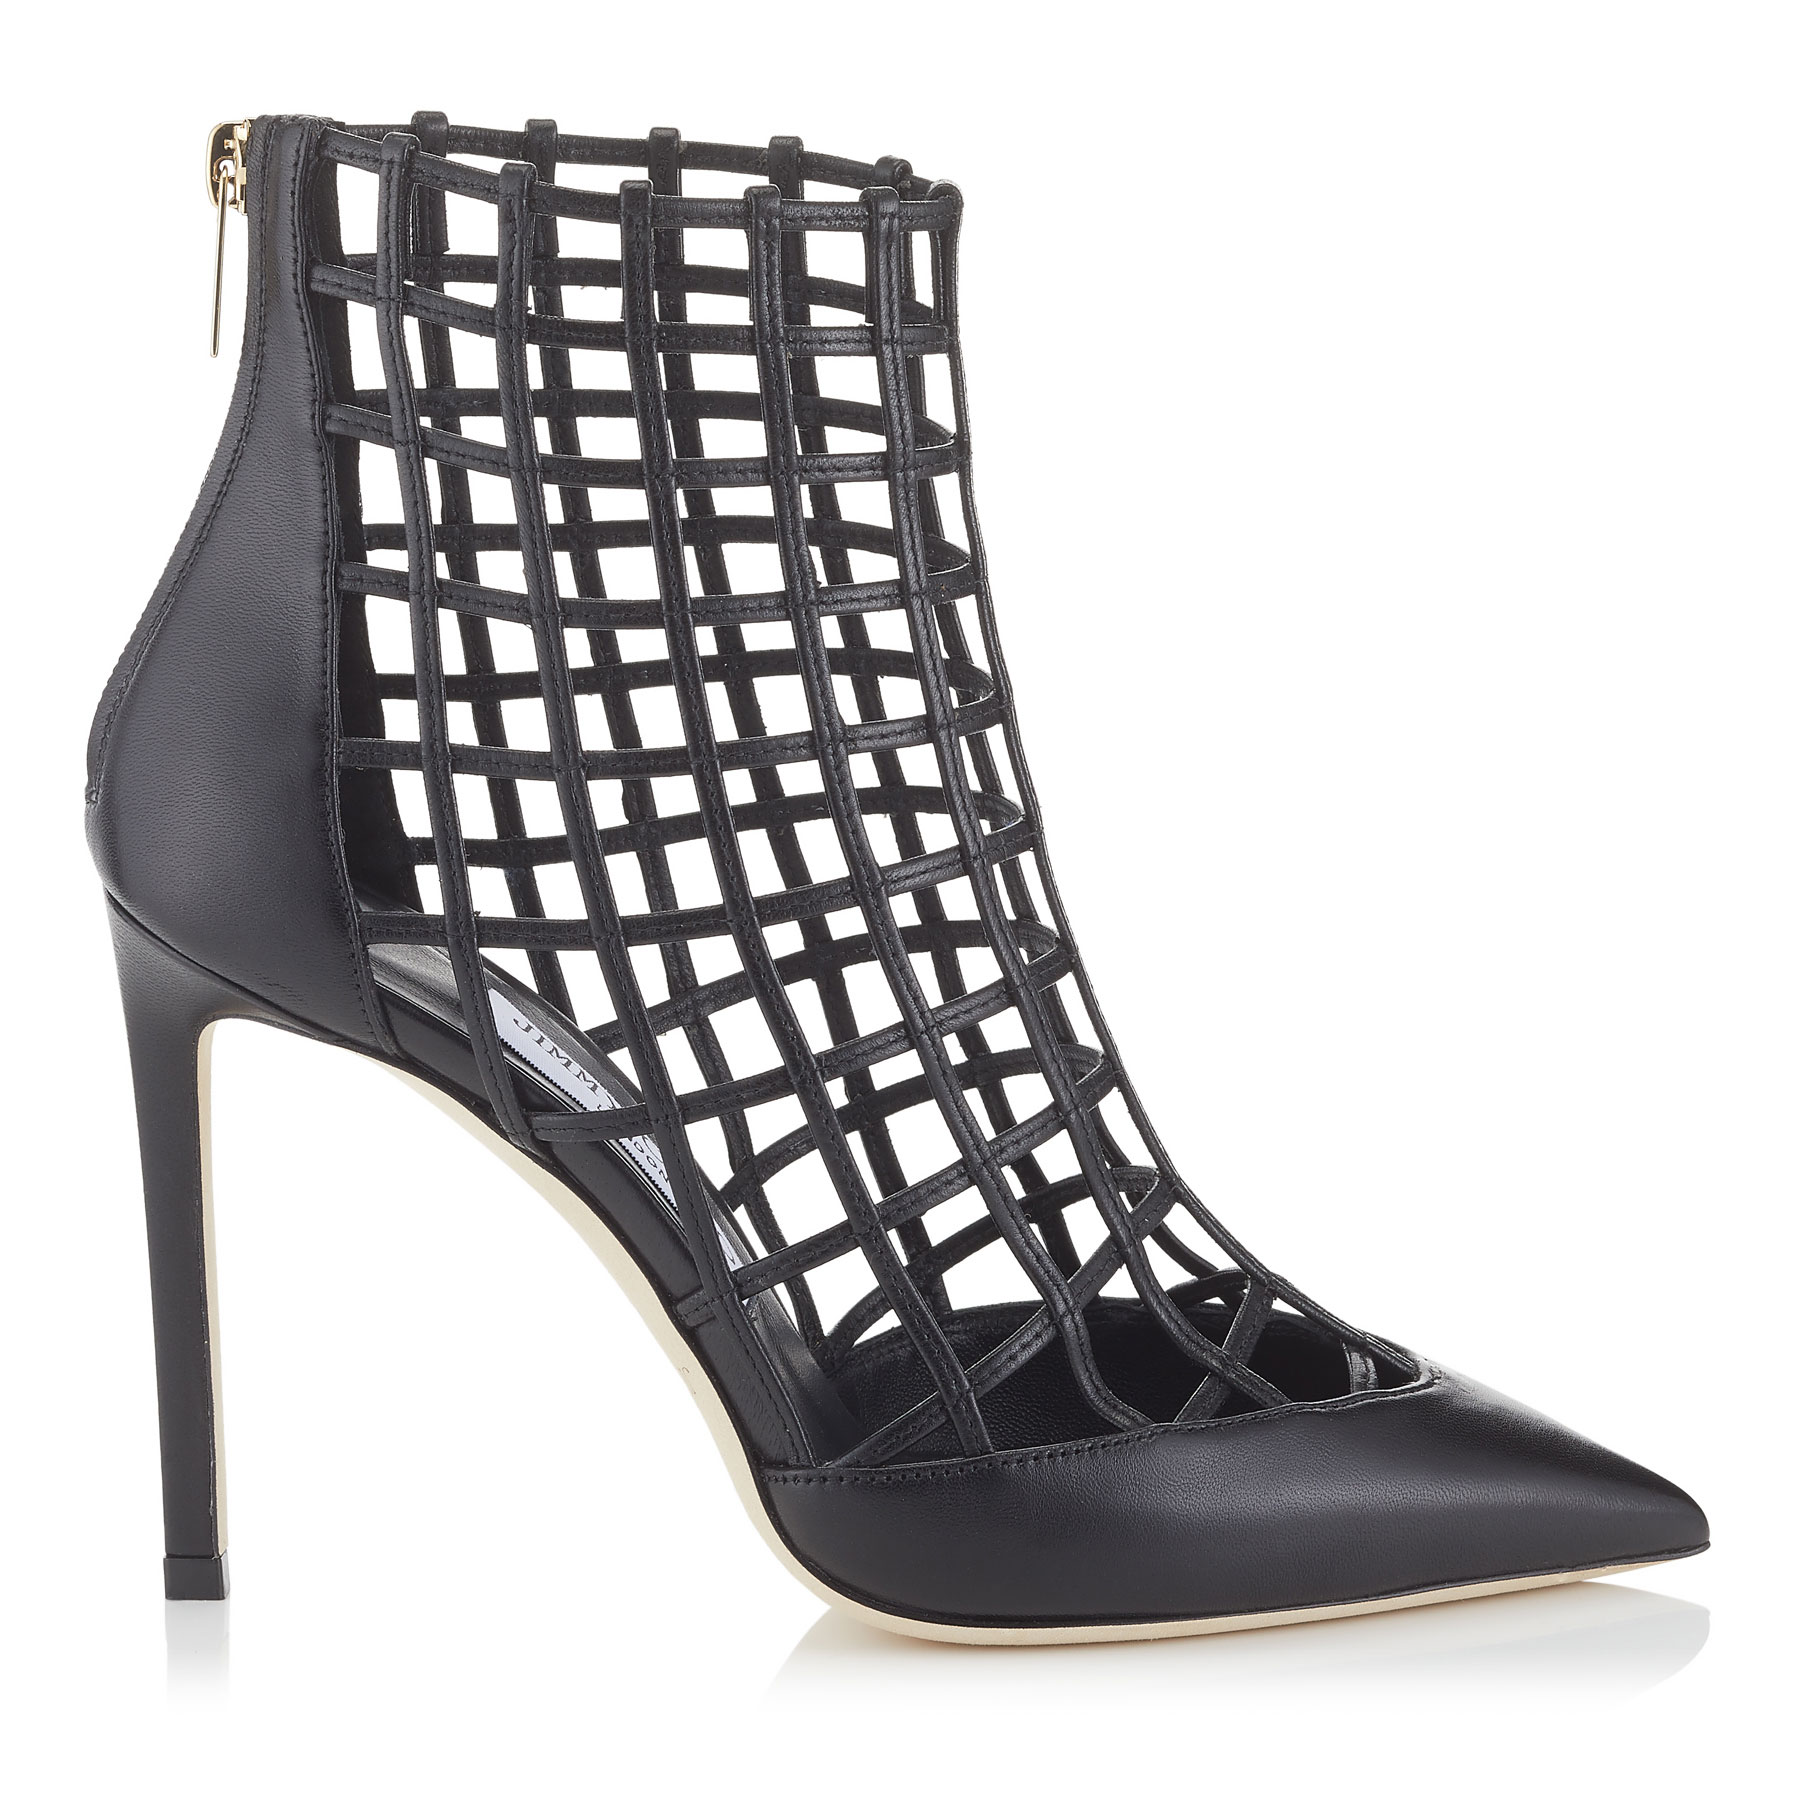 Photo of SHELDON 100 Black Nappa Leather Booties by Jimmy Choo womens shoes - buy Jimmy Choo footwear online